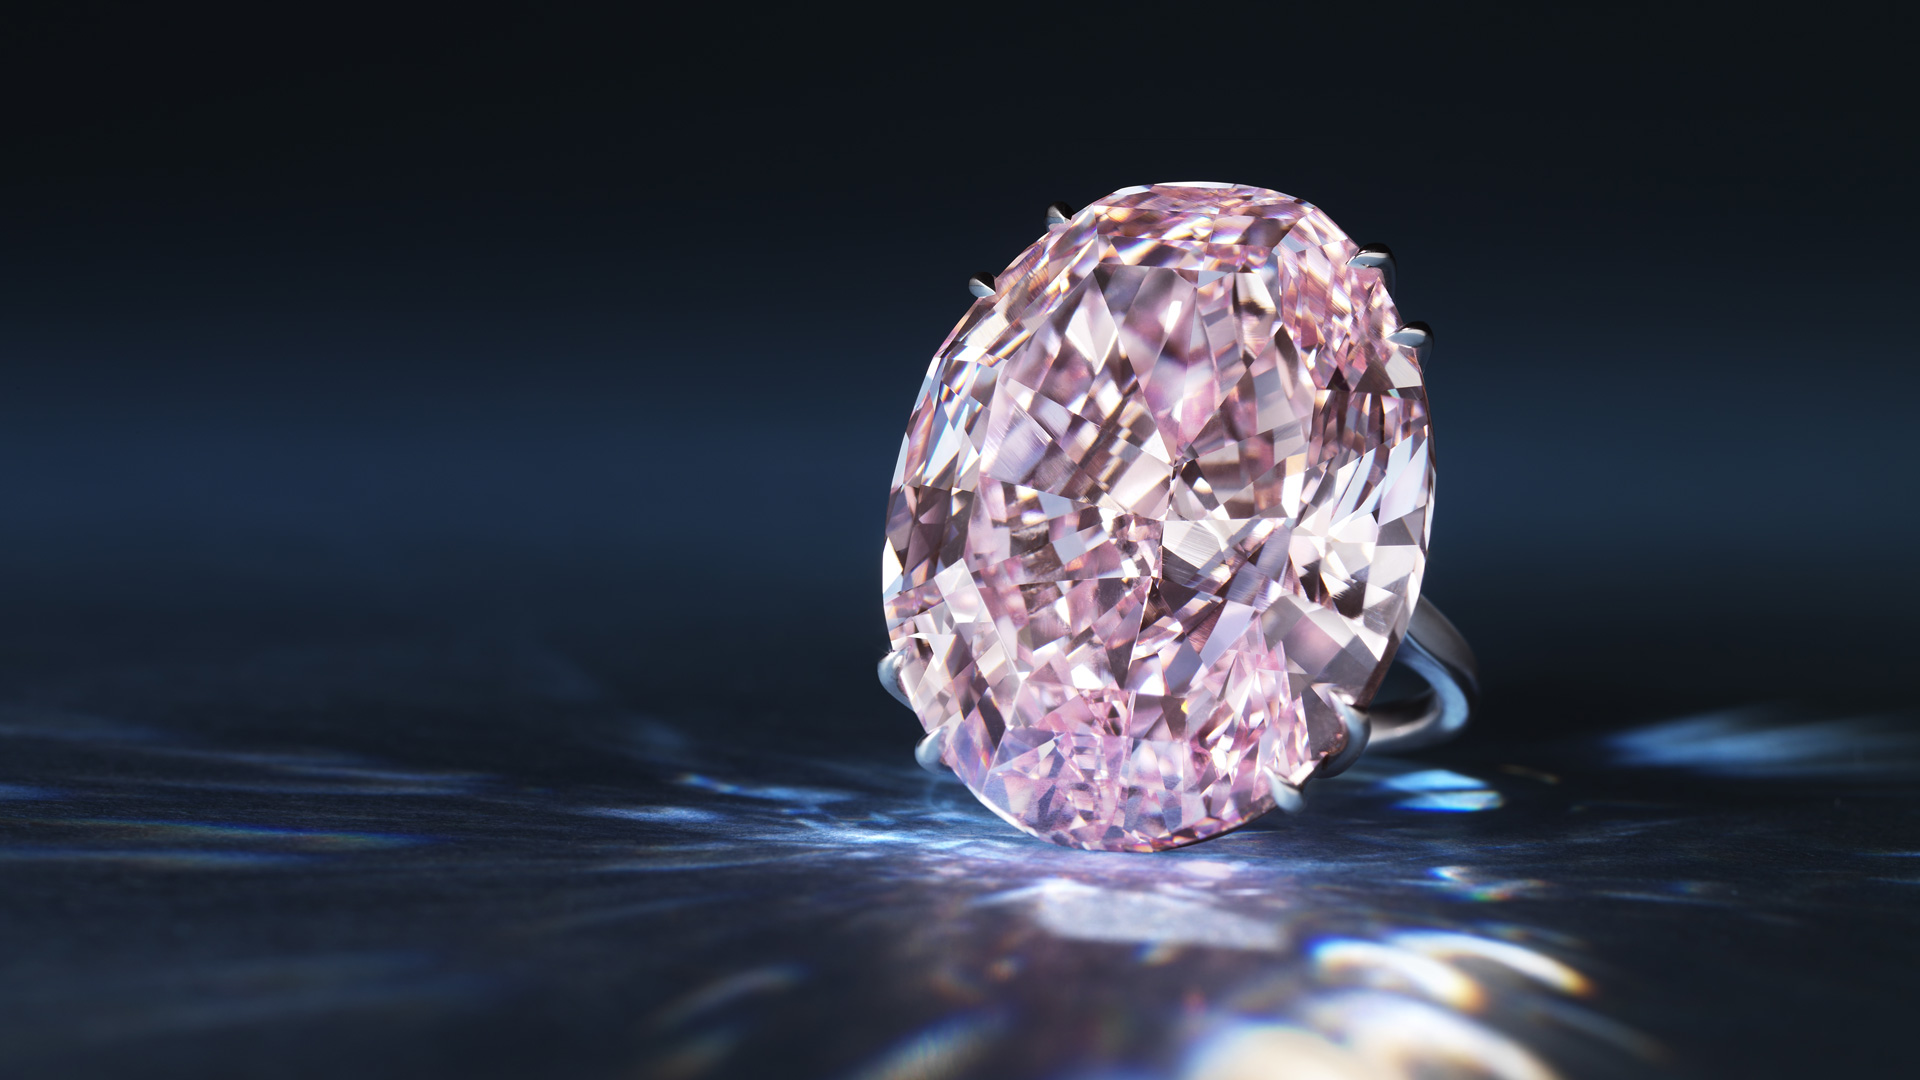 Meet The Pink Star The Most Precious Cut Diamond To Be